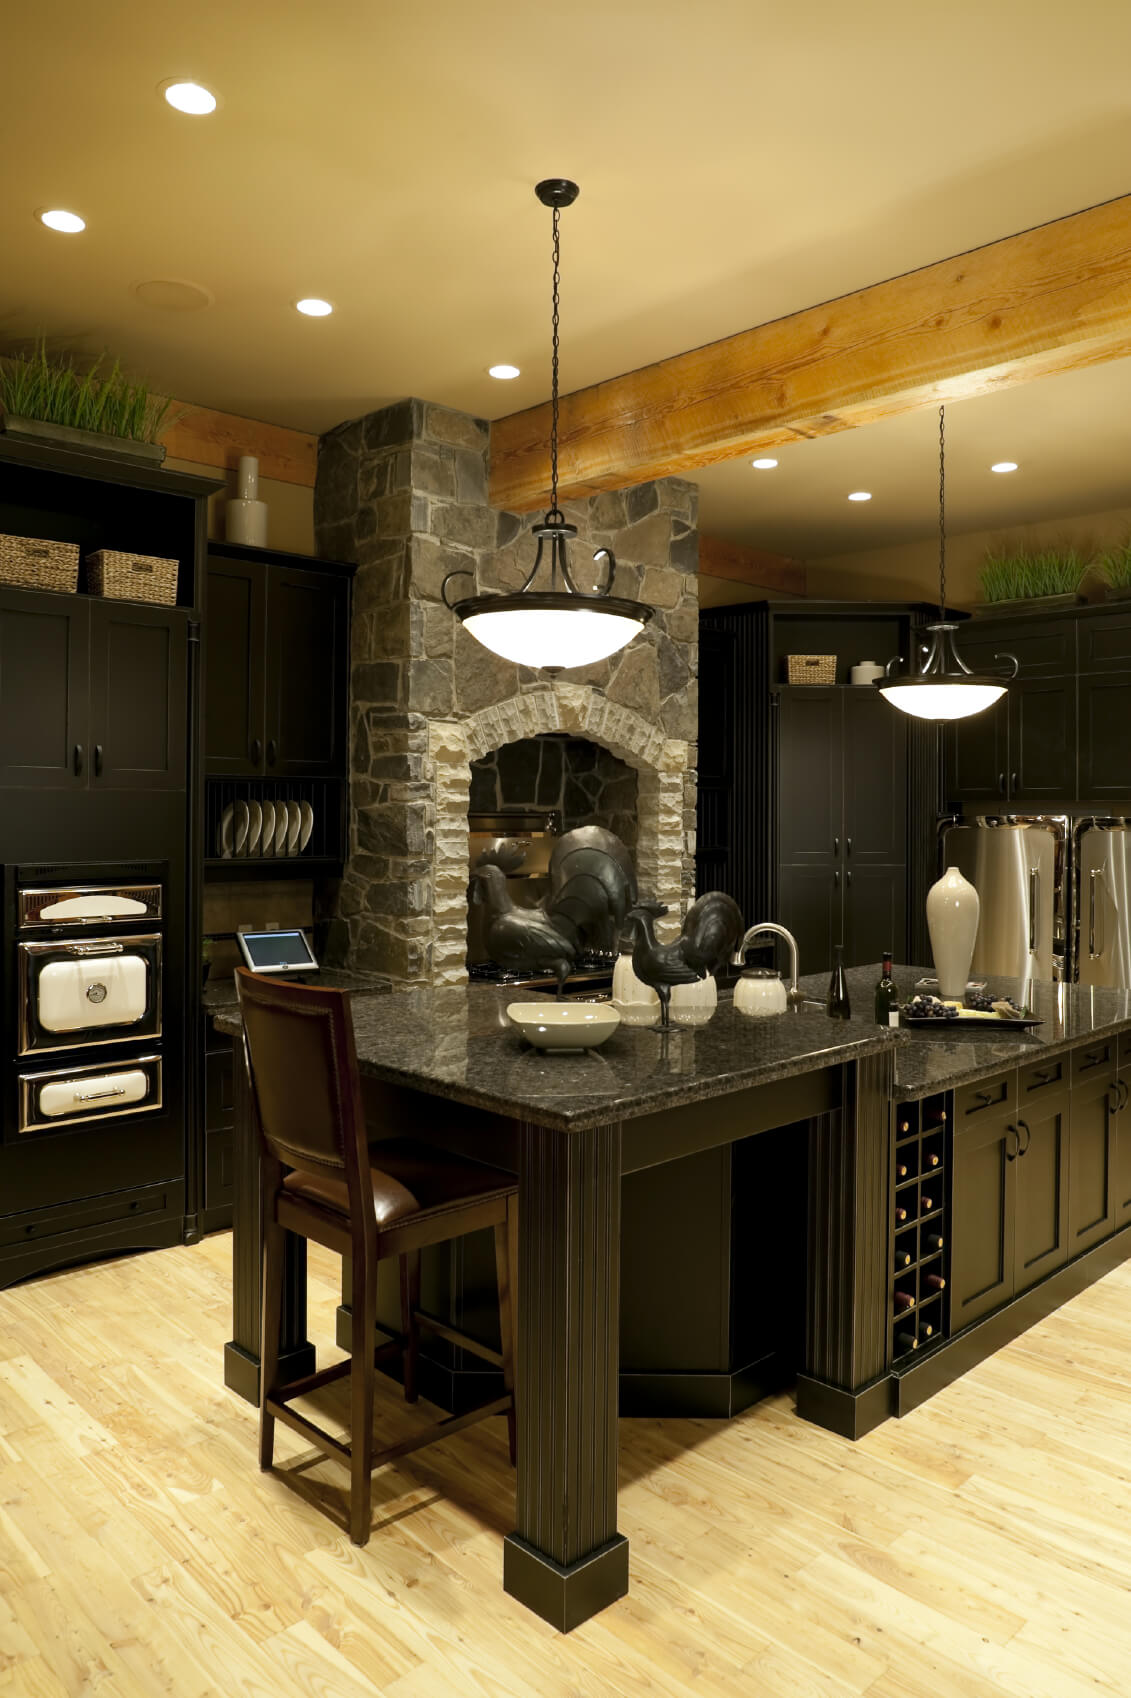 Luxury Kitchen Design Grand: 52 Dark Kitchens With Dark Wood And Black Kitchen Cabinets